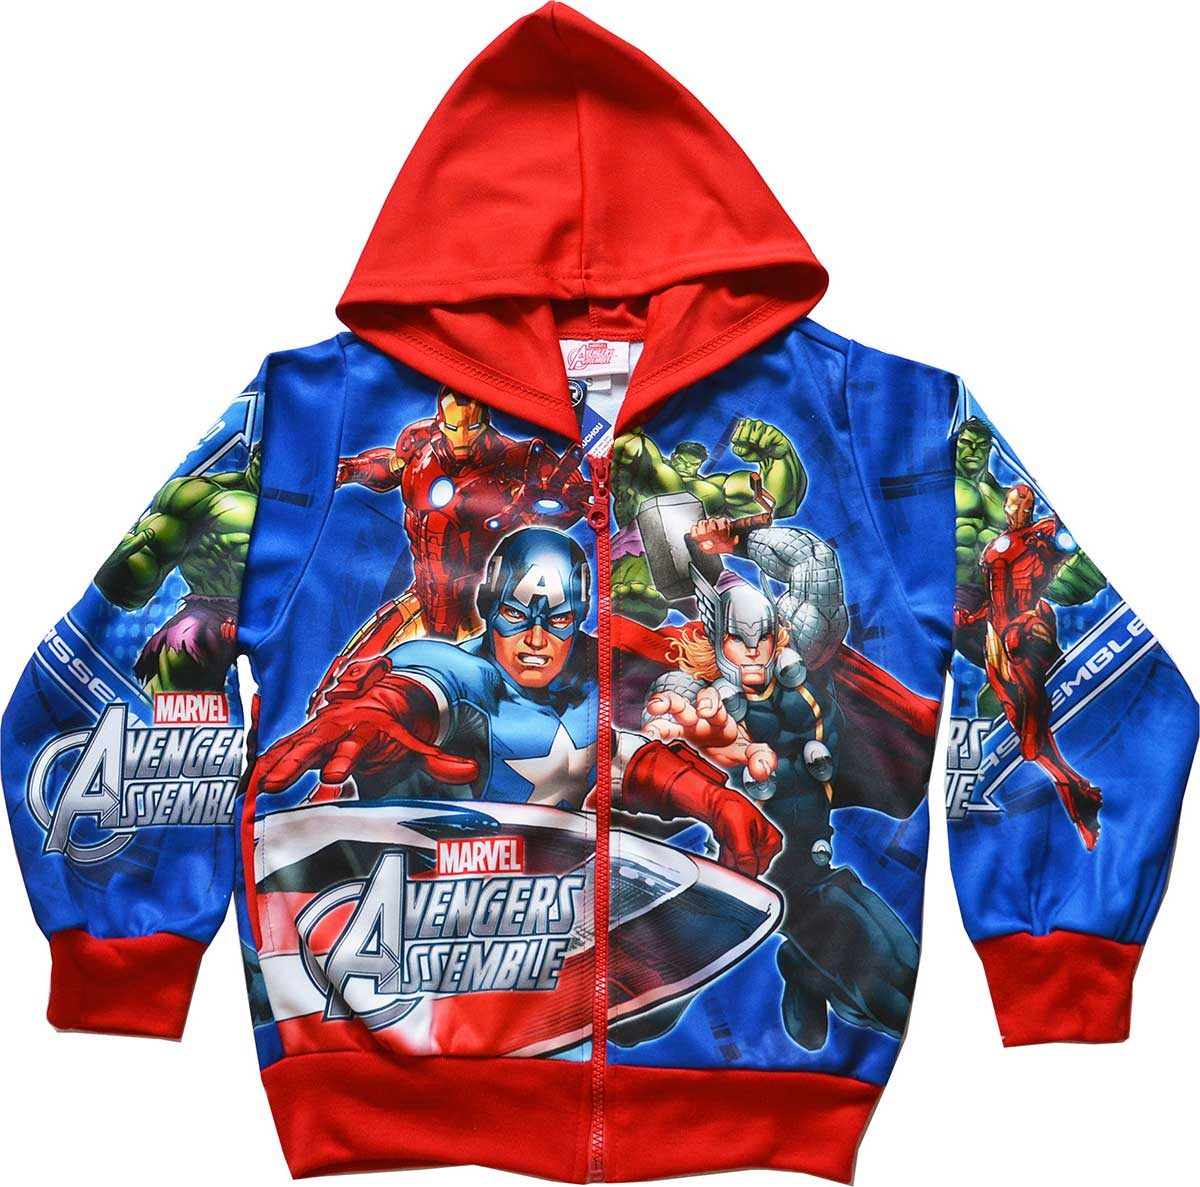 jacket-marvel-avengers